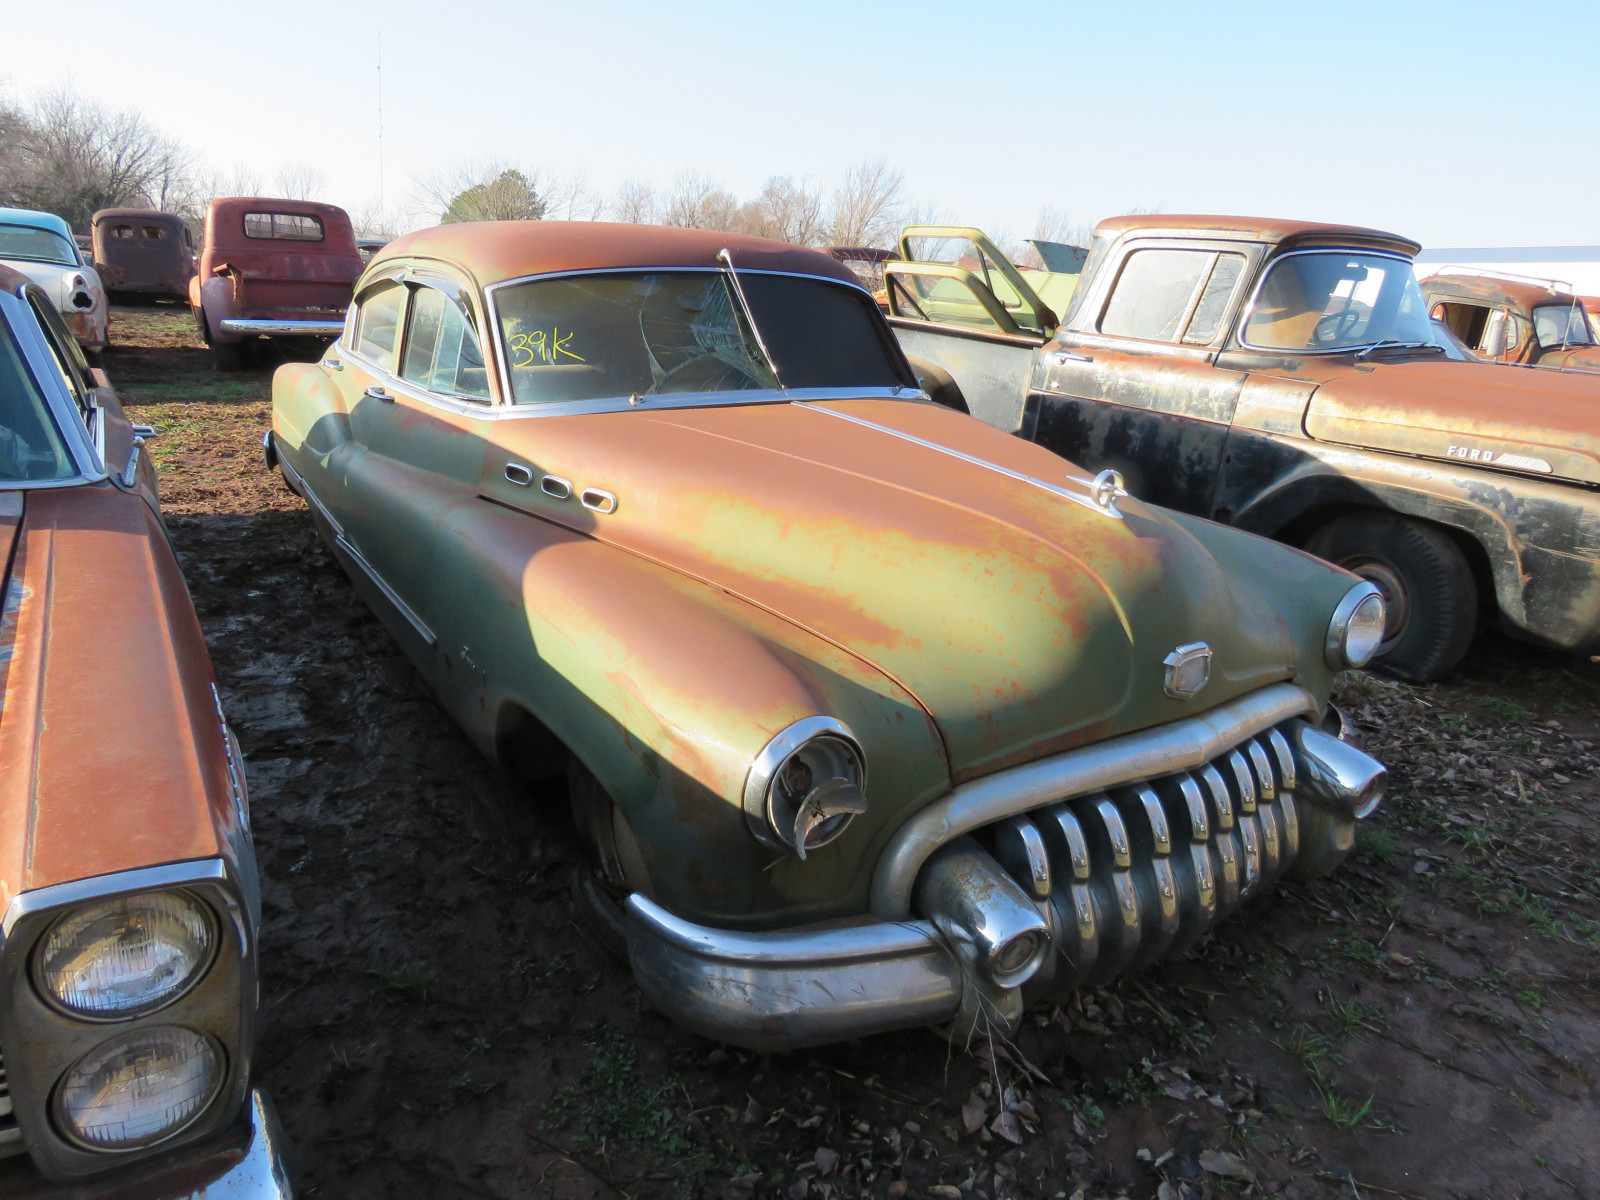 1950 Buick Special 4dr Sedan - Image 1